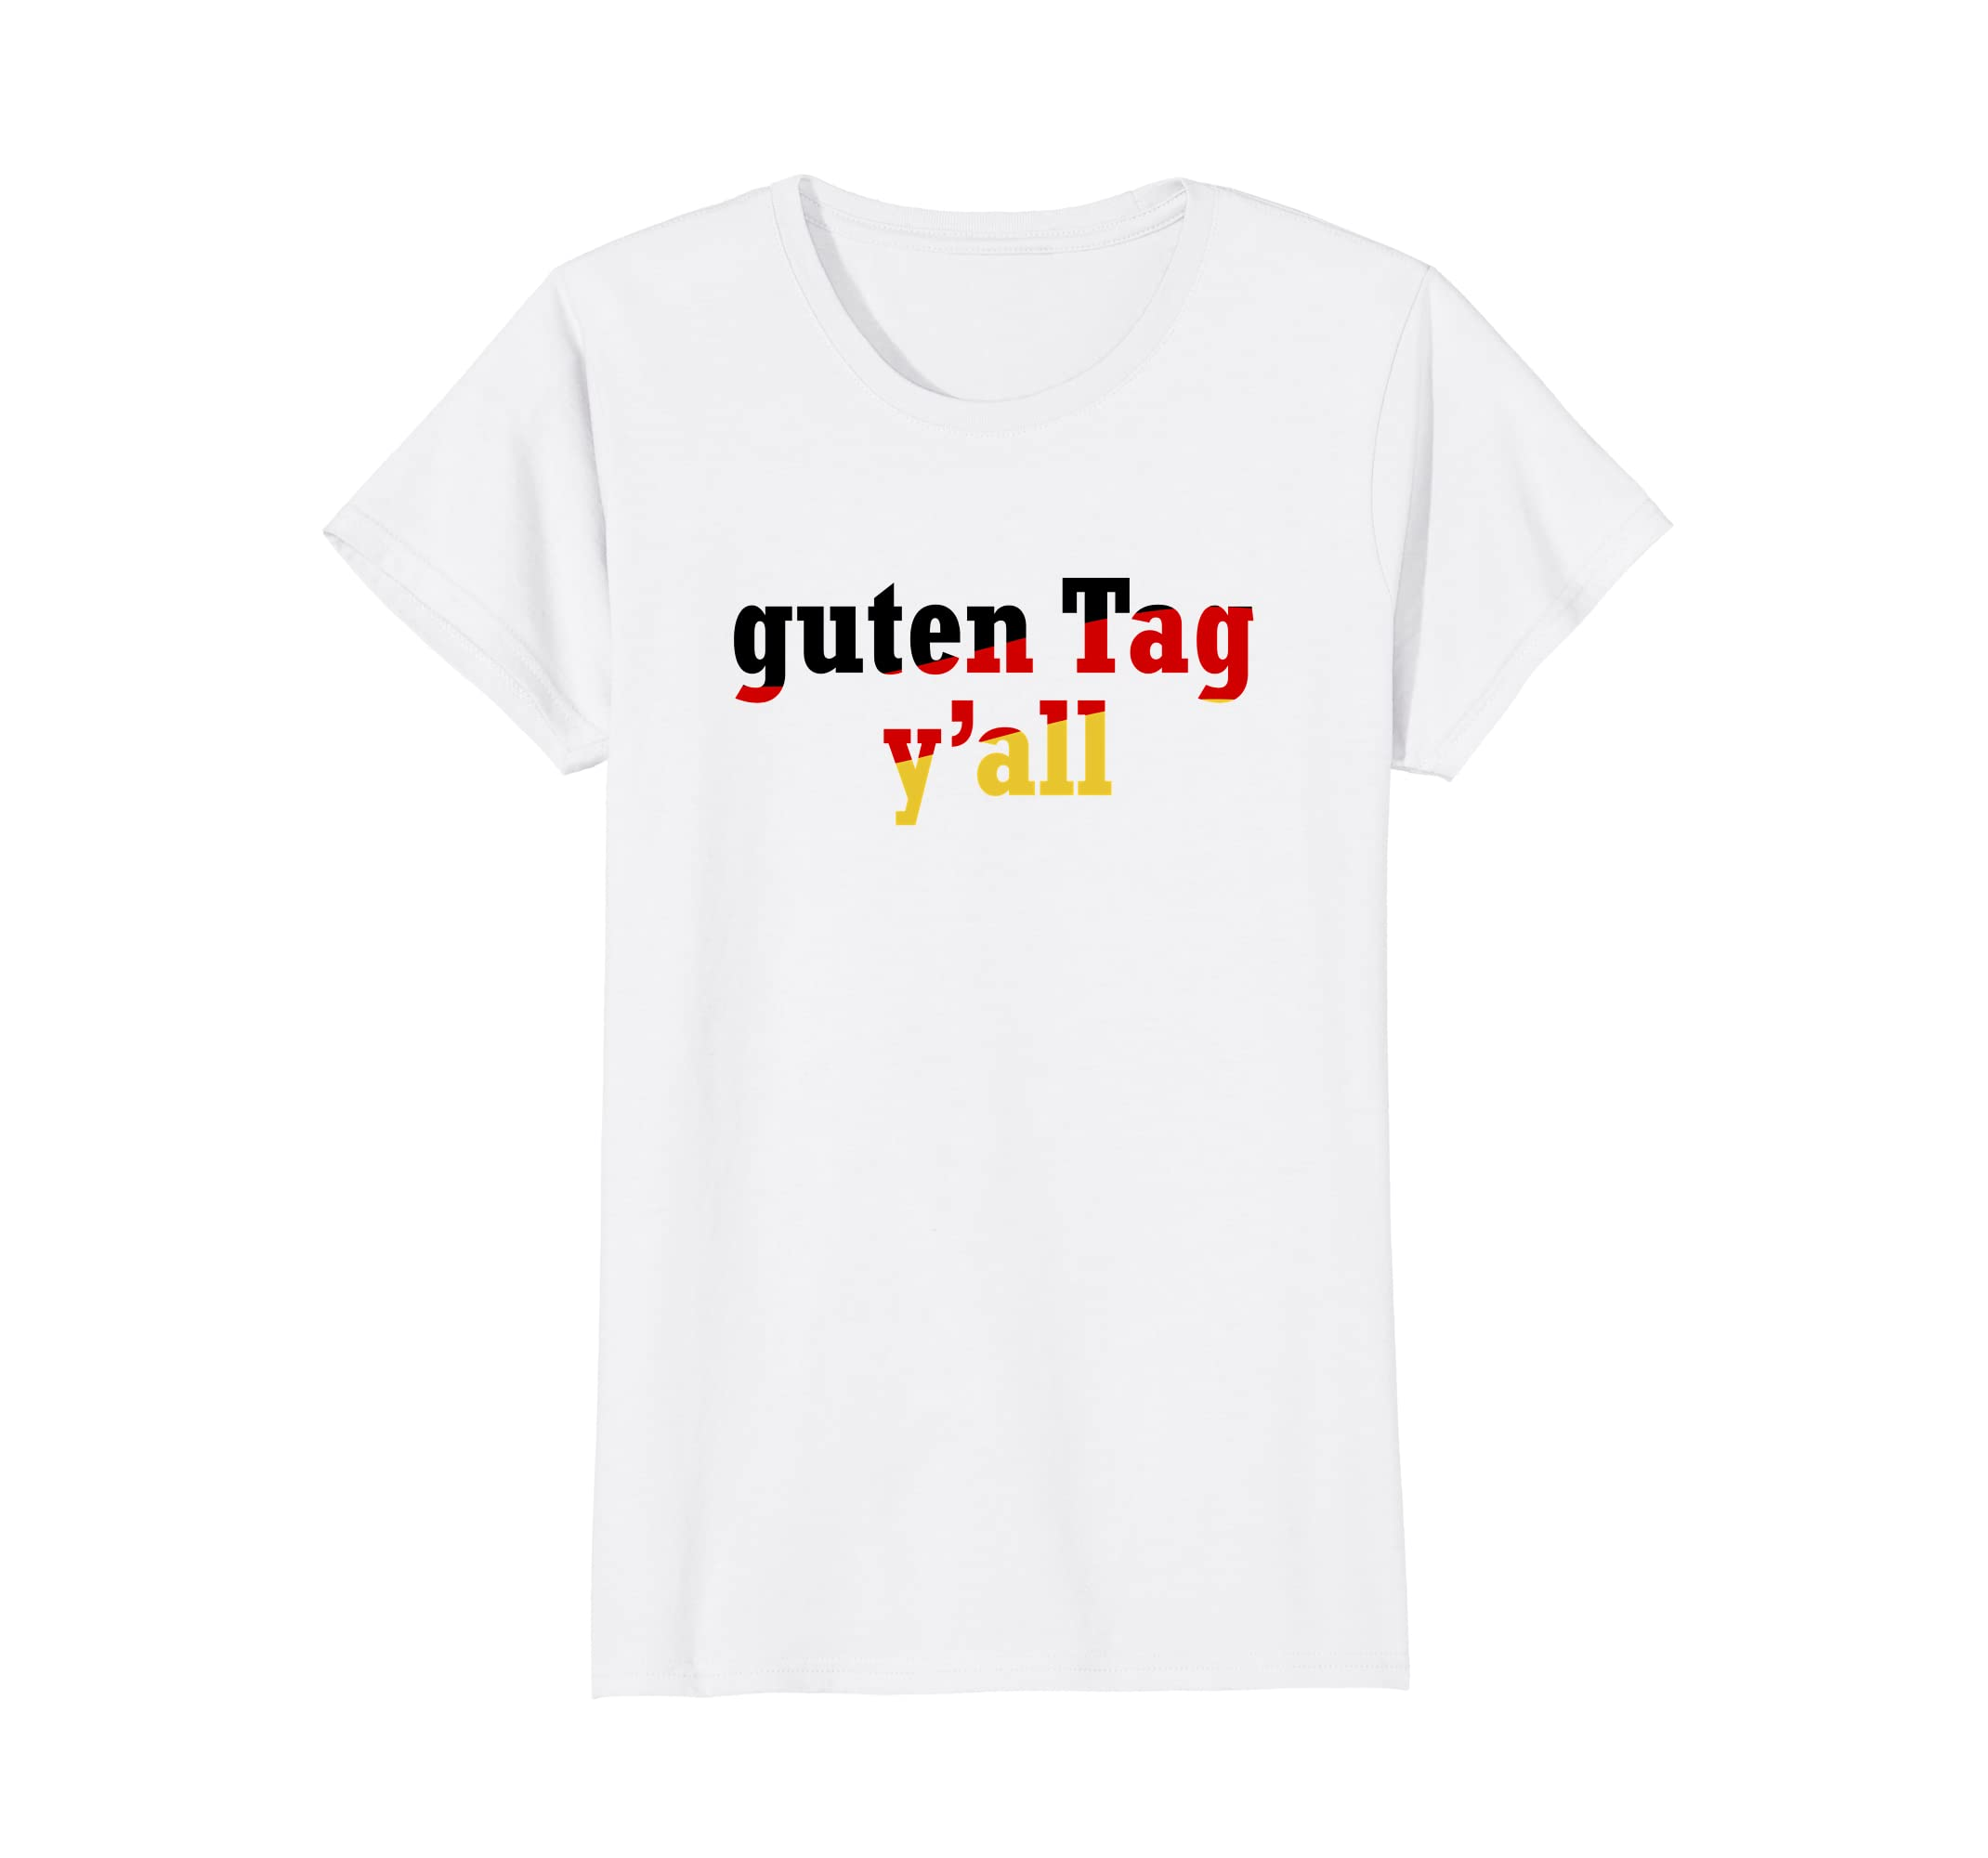 4492bca5 Guten Tag Y'all Texas German Germanfest Oktober Fest TShirt